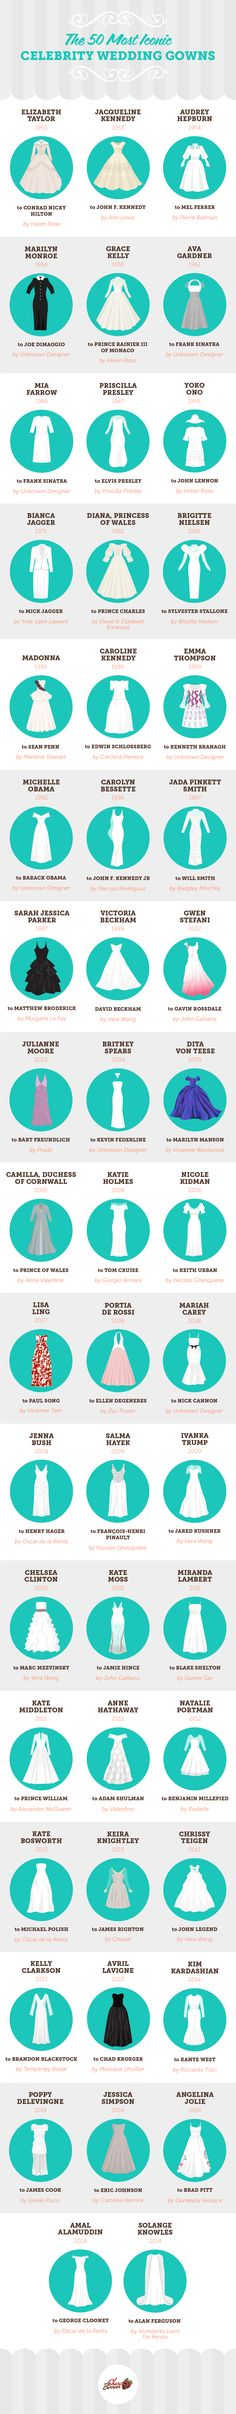 50 Amazing Celebrity Wedding Dresses – It always makes an entrance, and is probably the most unforgettable dress you'll ever wear: the wedding dress. And if it's a celebrity wedding, you know the dress will be even more glamorous and amazing. Famous Wedding Dresses, Celebrity Wedding Dresses, Celebrity Weddings, Bridal Dresses, Wedding Gowns, Wedding Trends, Wedding Styles, Wedding Ideas, Perfect Wedding